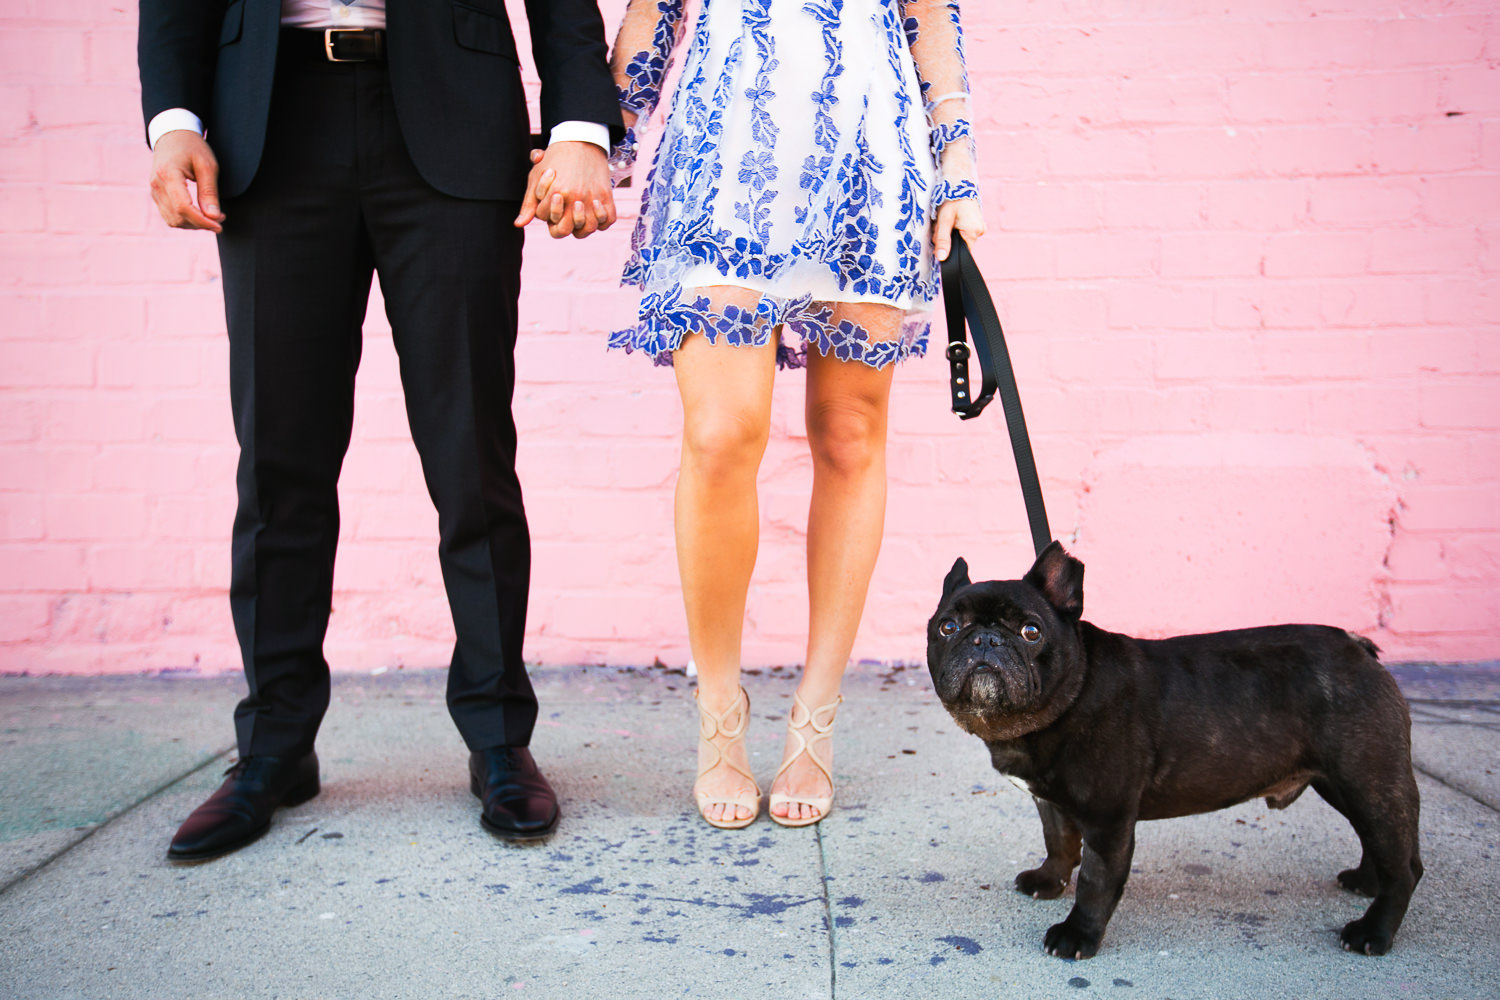 Colorful and fun Los Angeles engagement photo with pug dog